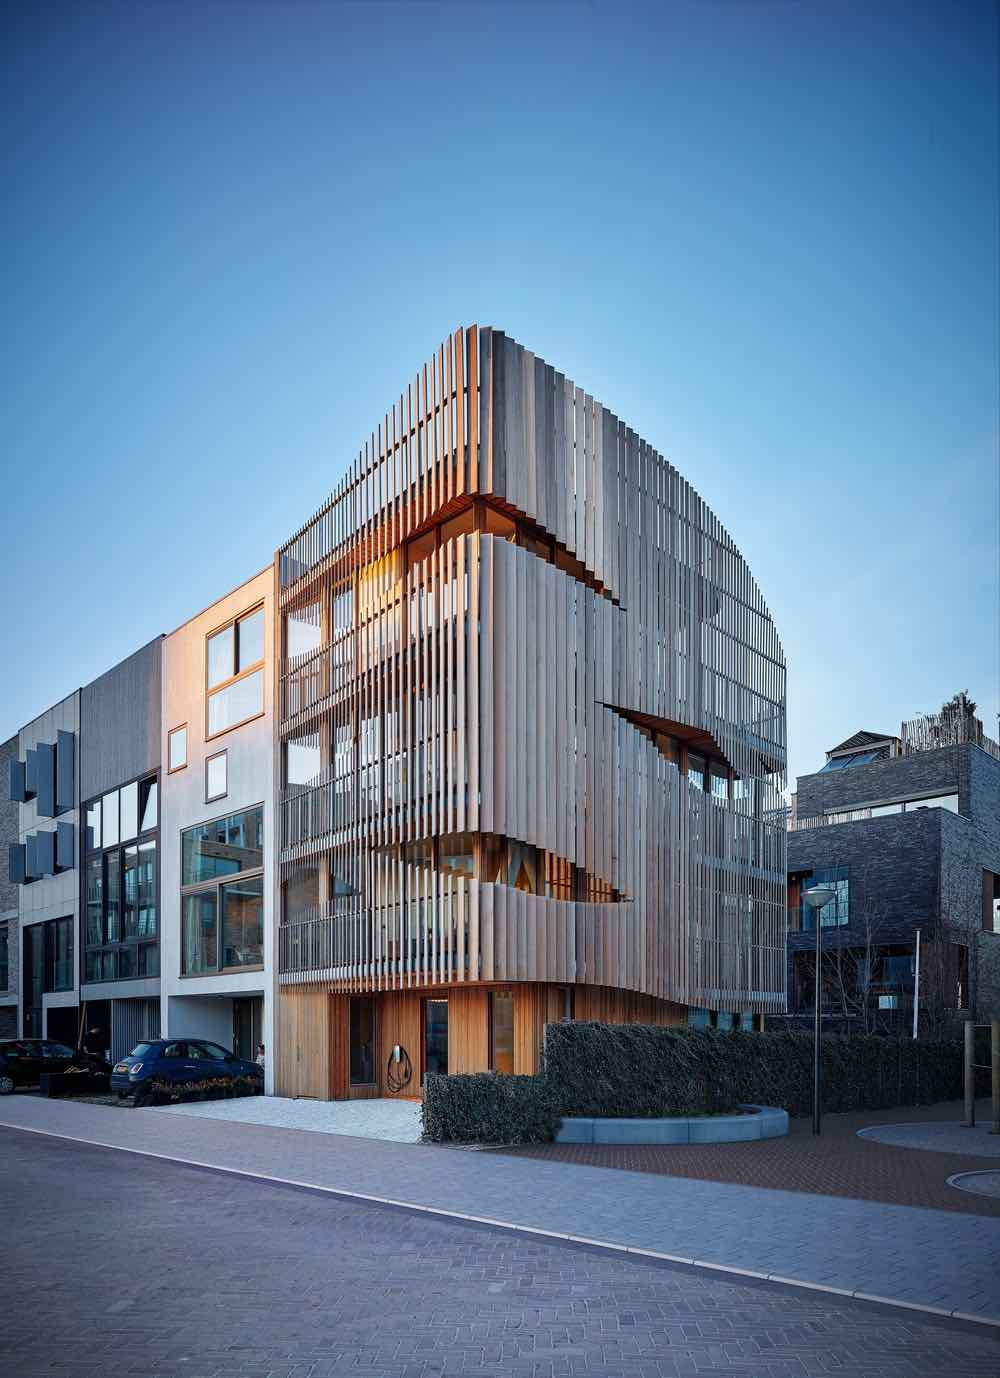 Freebooter building by GG-Loop in Amsterdam - Photo by Michael Sieber.